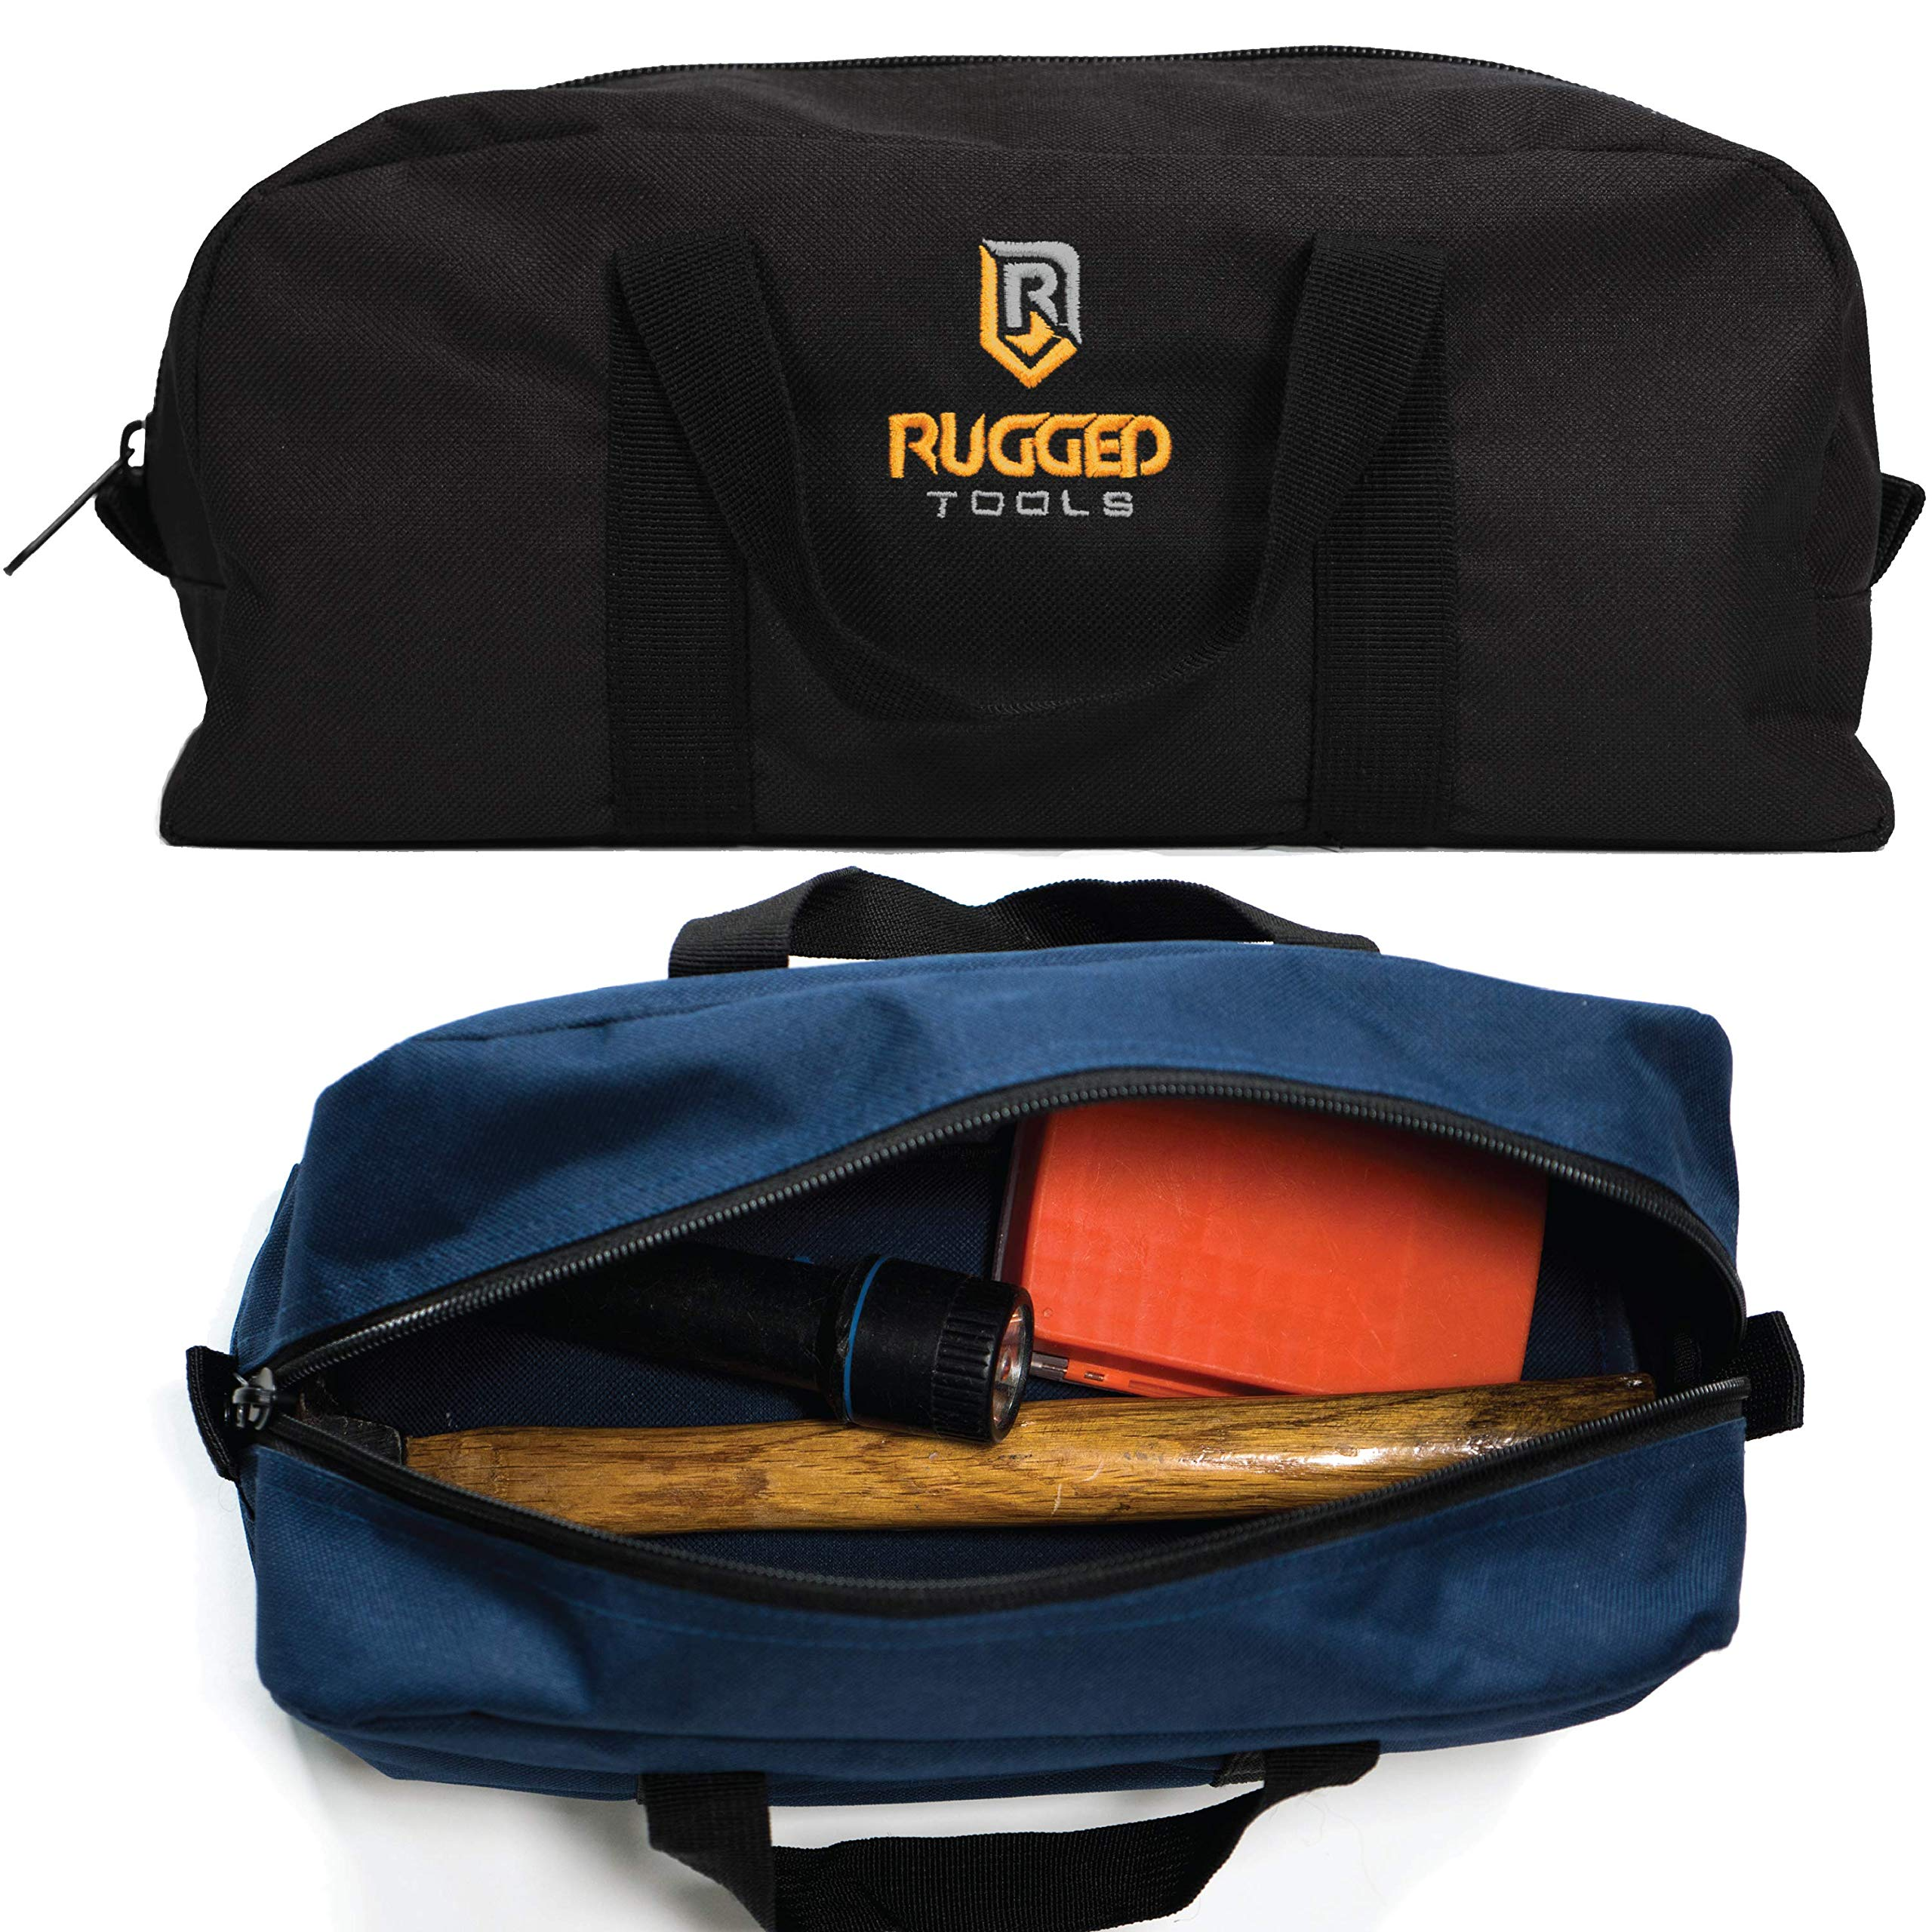 Rugged Tools Tool Bag Combo - Includes 1 Small & 1 Medium Toolbag - Organizer Tote Bags for Electrician, Plumbing, Gardening, HVAC & More by Rugged Tools (Image #5)